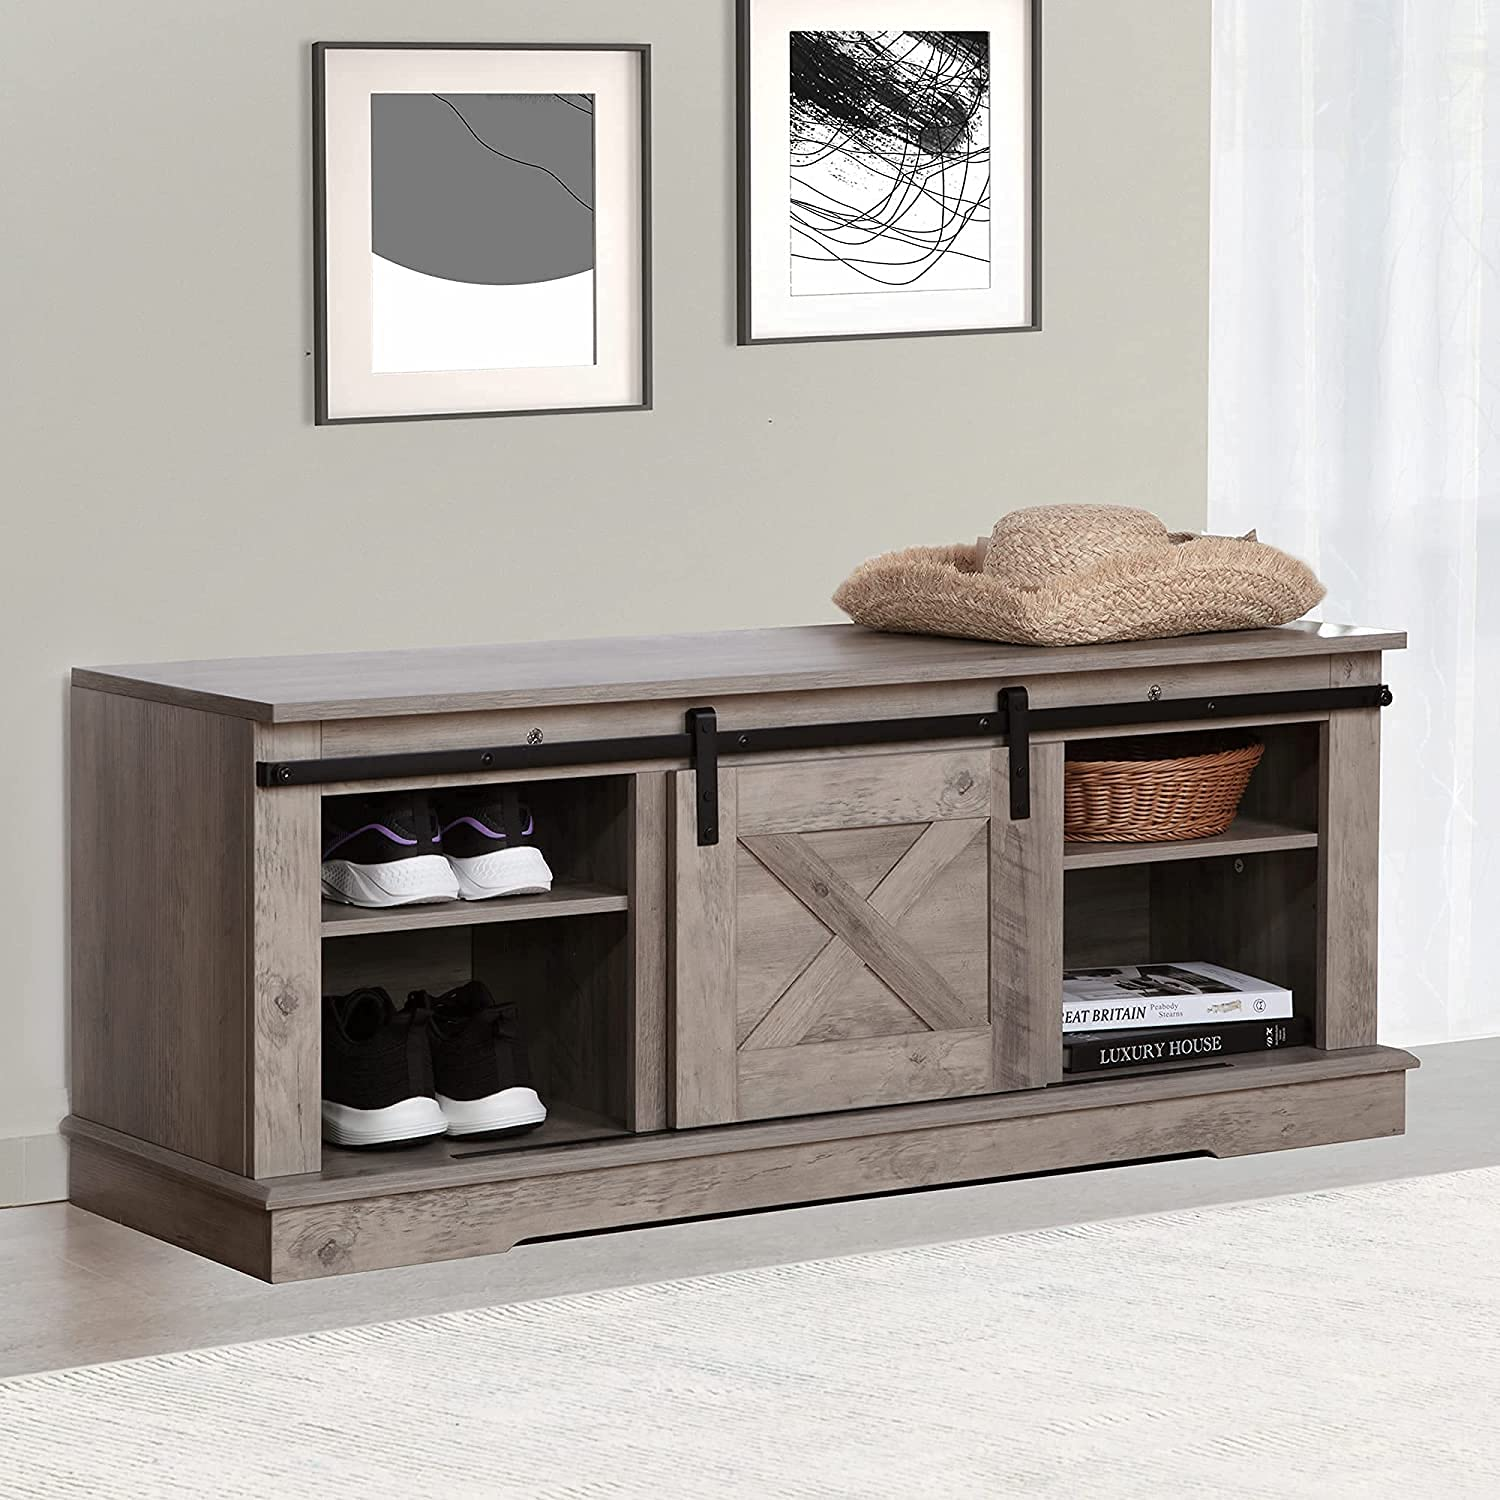 Shoe Storage Bench Farmhouse Sliding Barn 5% OFF Door Entryway S Outlet sale feature